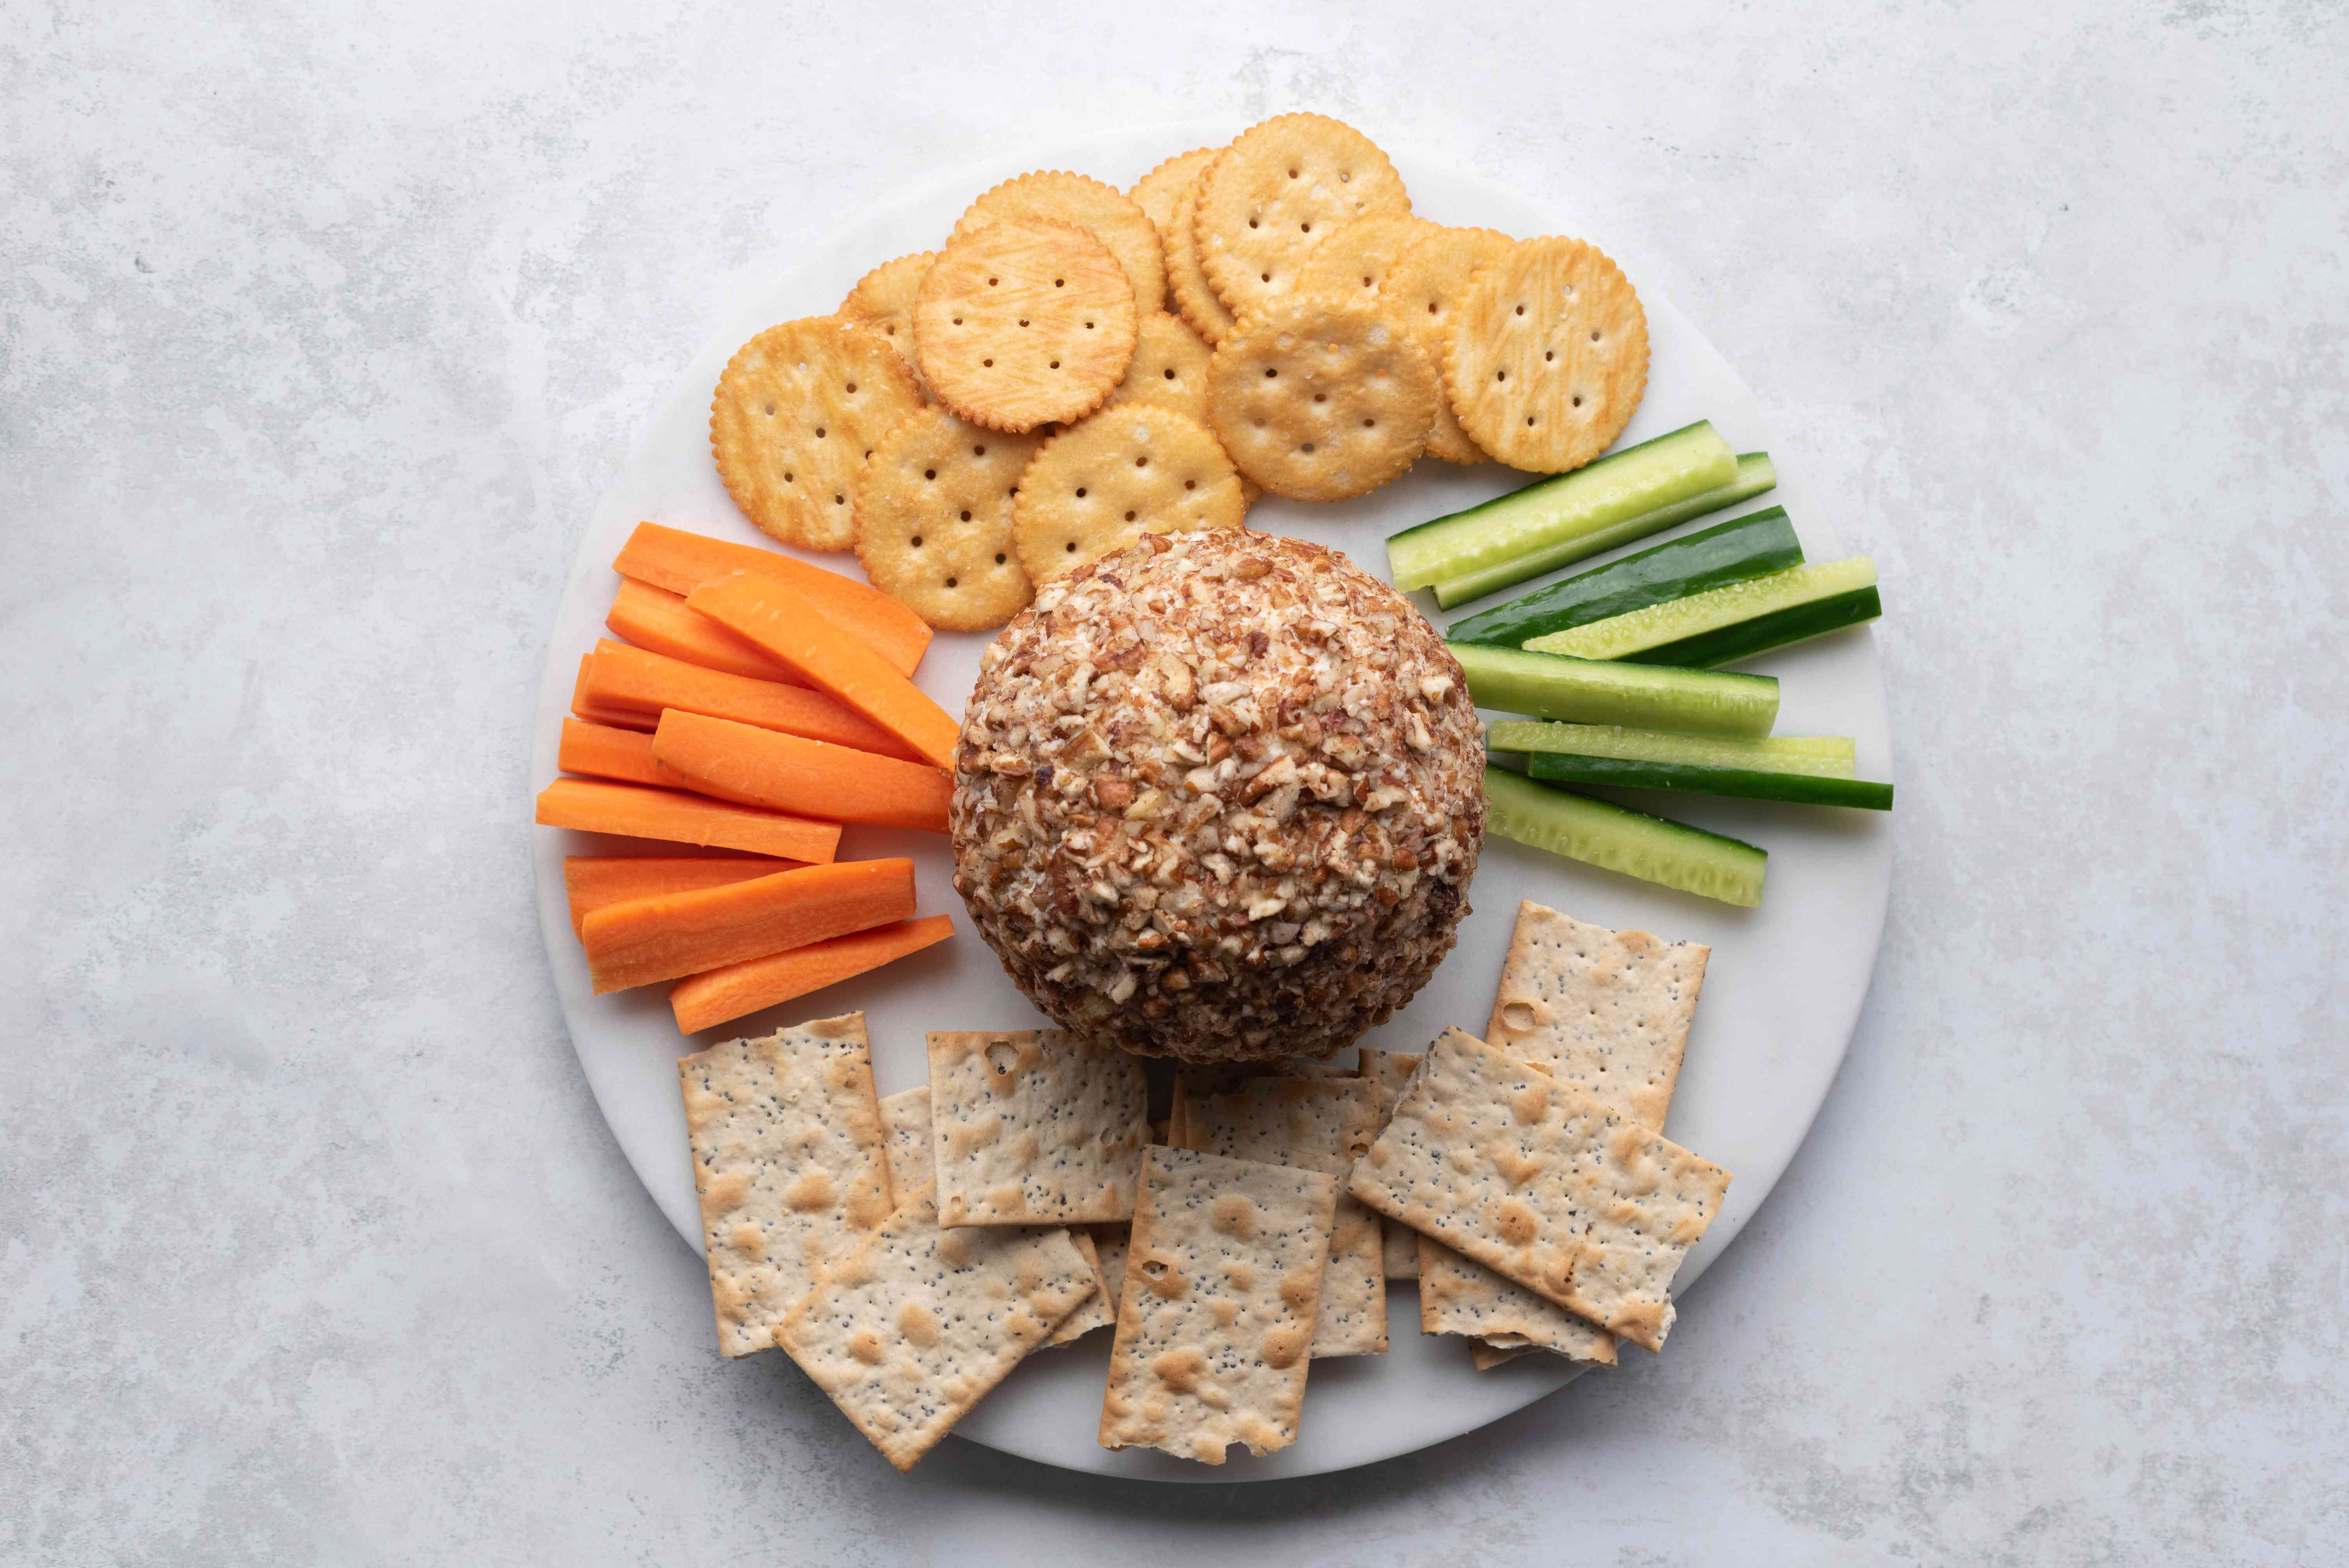 Festive Party Cheese Ball With Pecans, served with crackers and vegetables